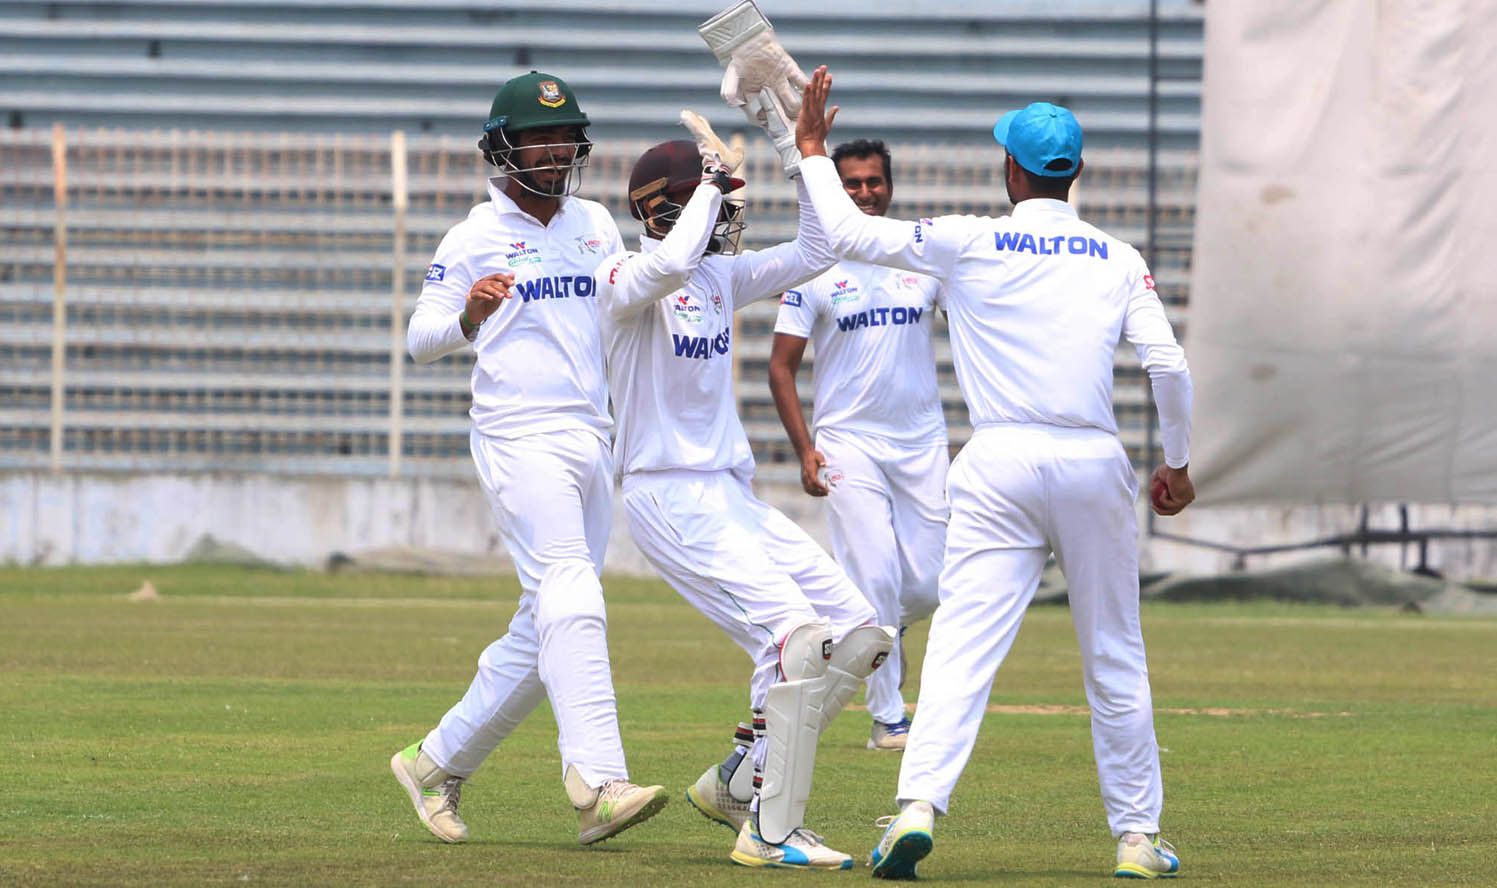 South Zone suffer batting collapse